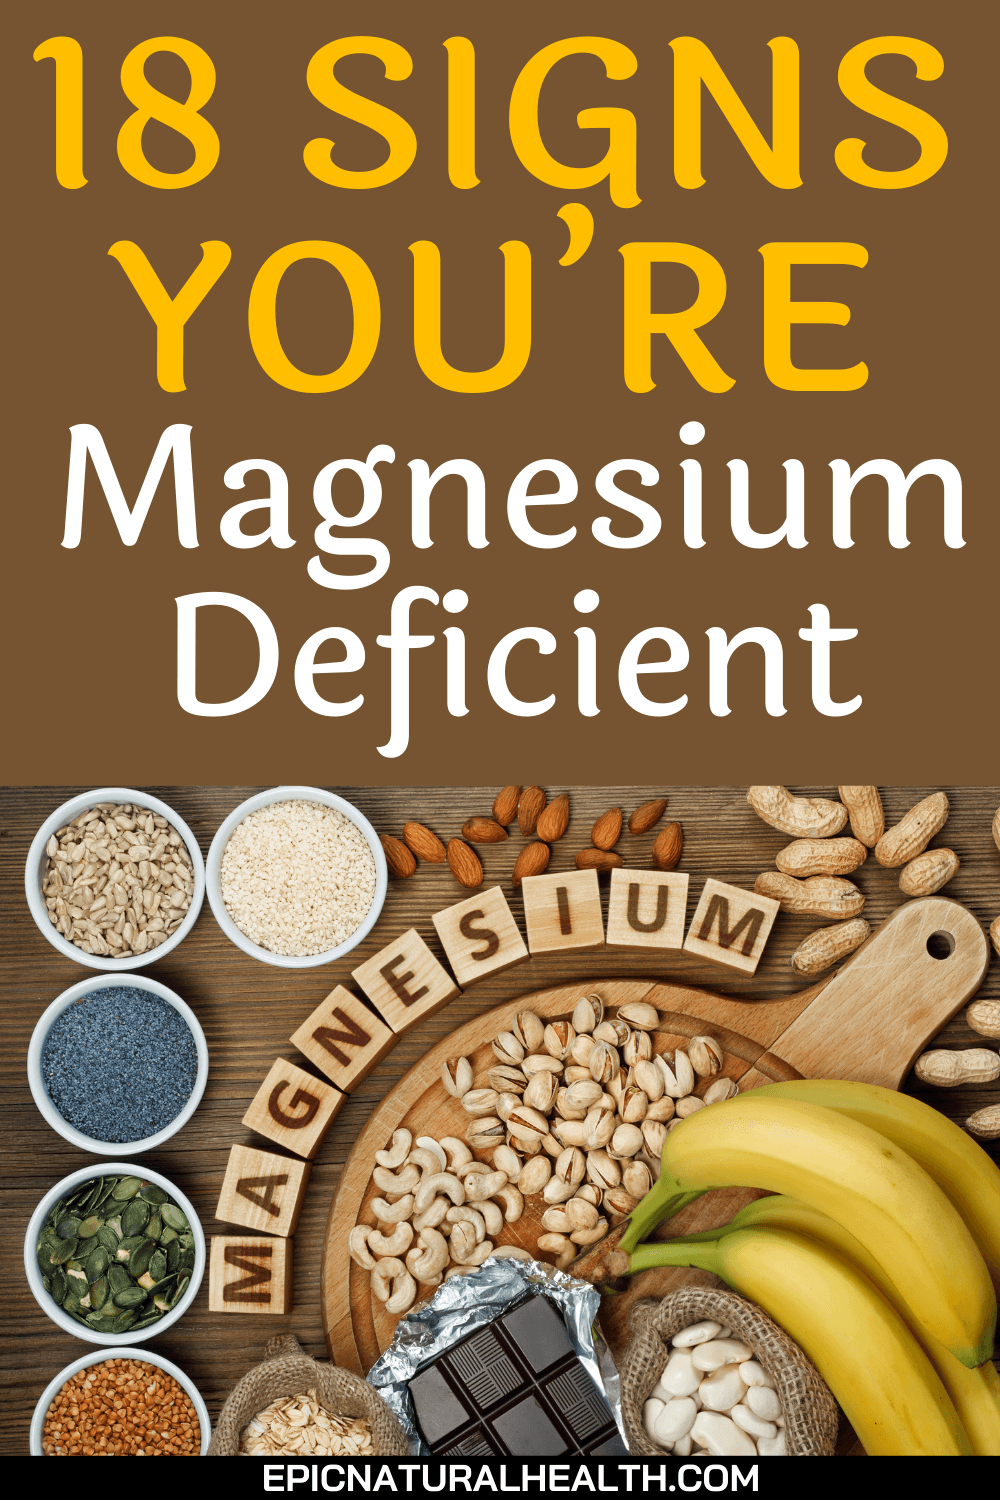 18 signs you're magnesium deficient